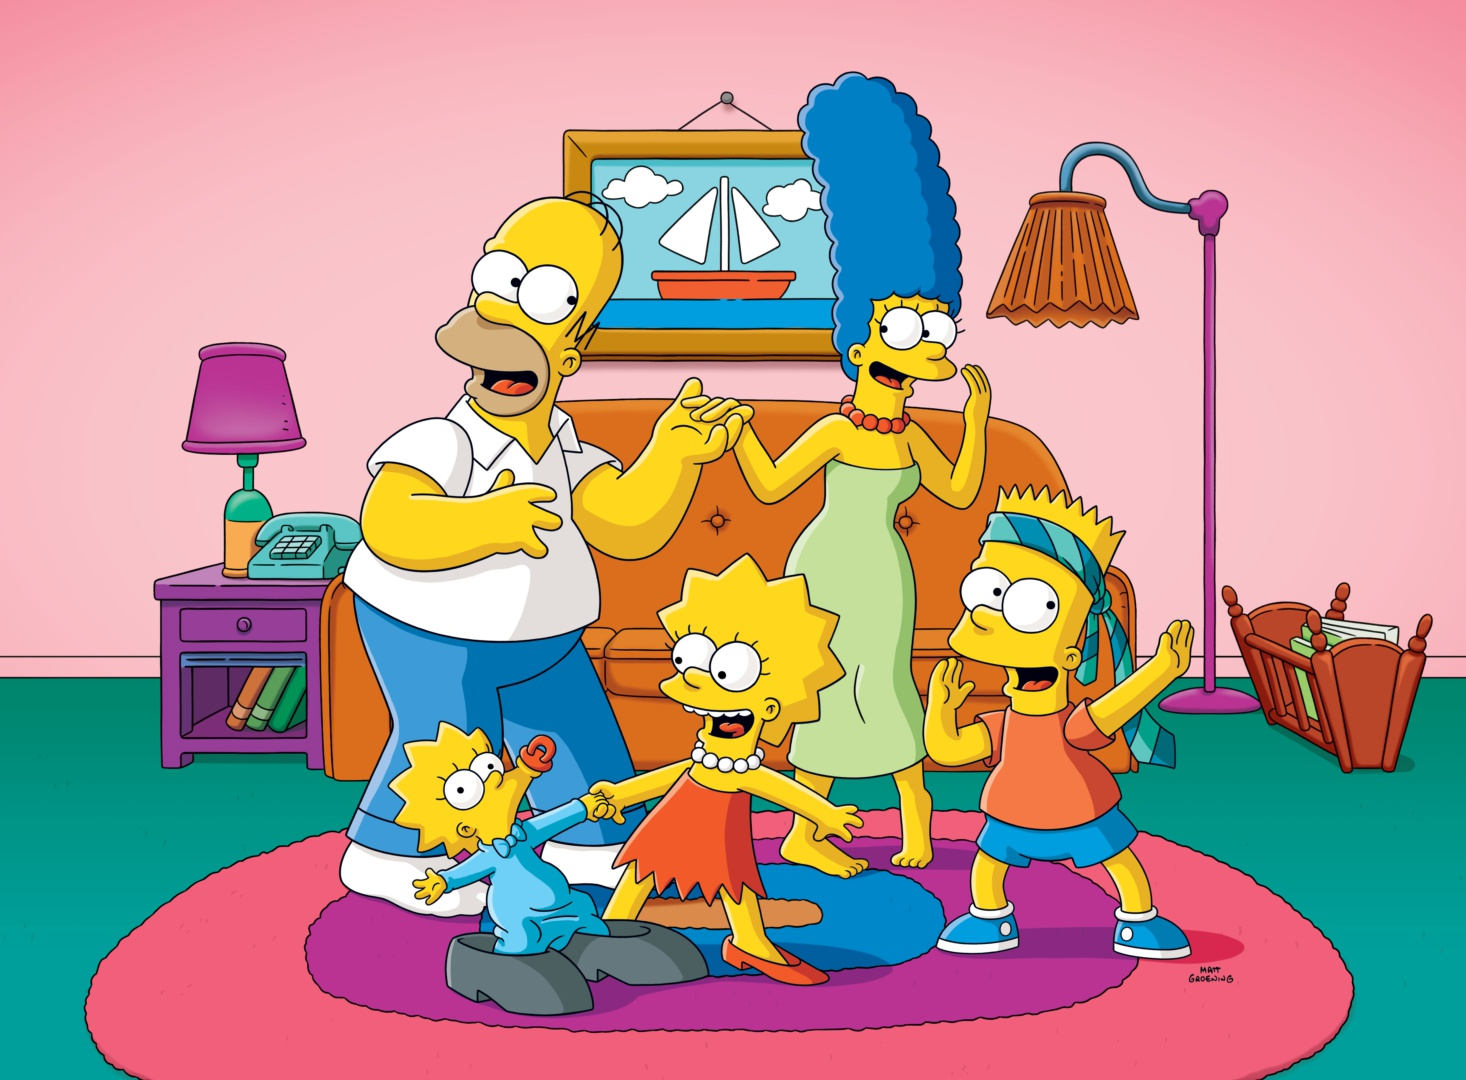 3.Simpsons_FamilyDressDance_2019_R4_WB_LR_UBG.jpg